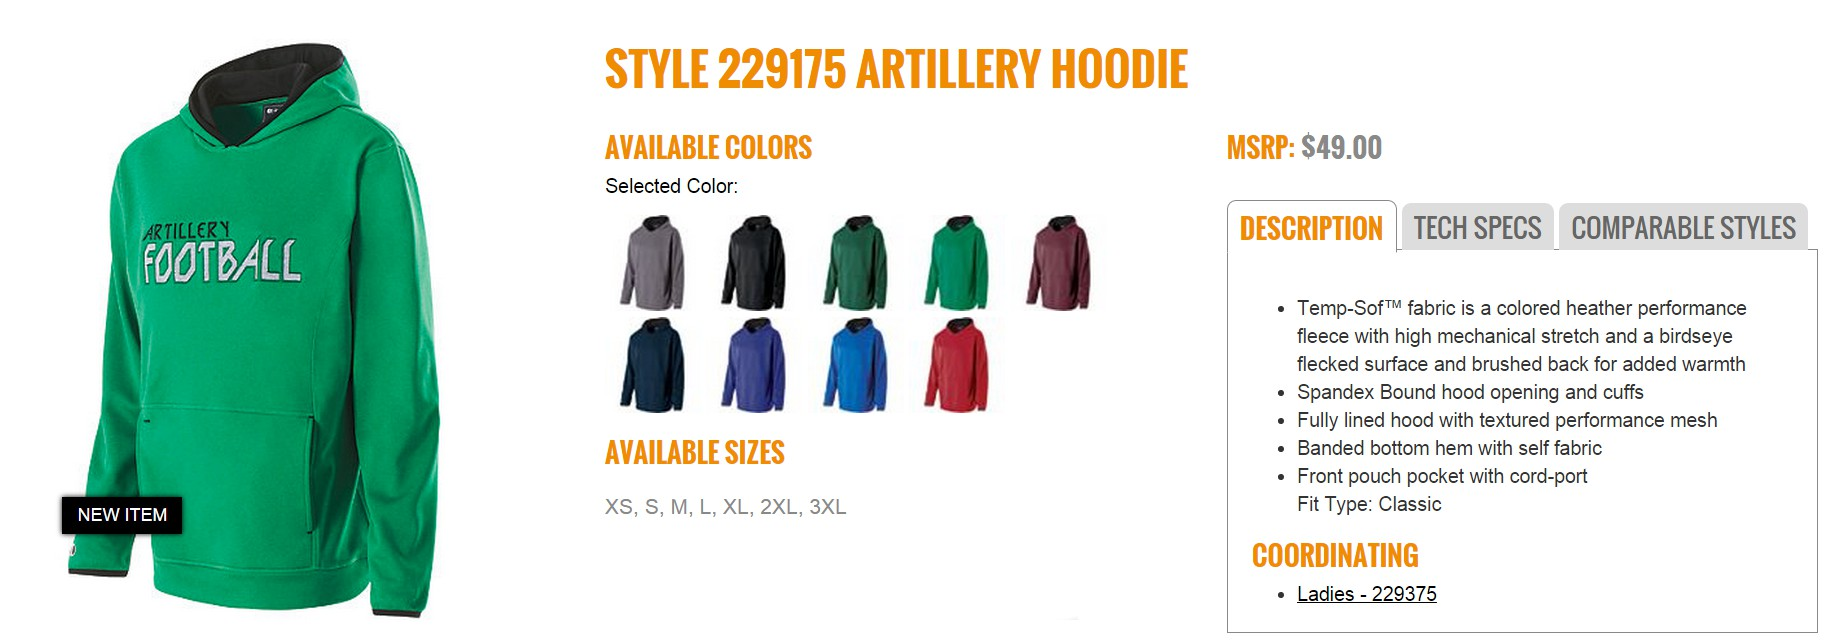 Group Fundraising Store Apparel Fundraising Holloway Artillery Hoodie 229175